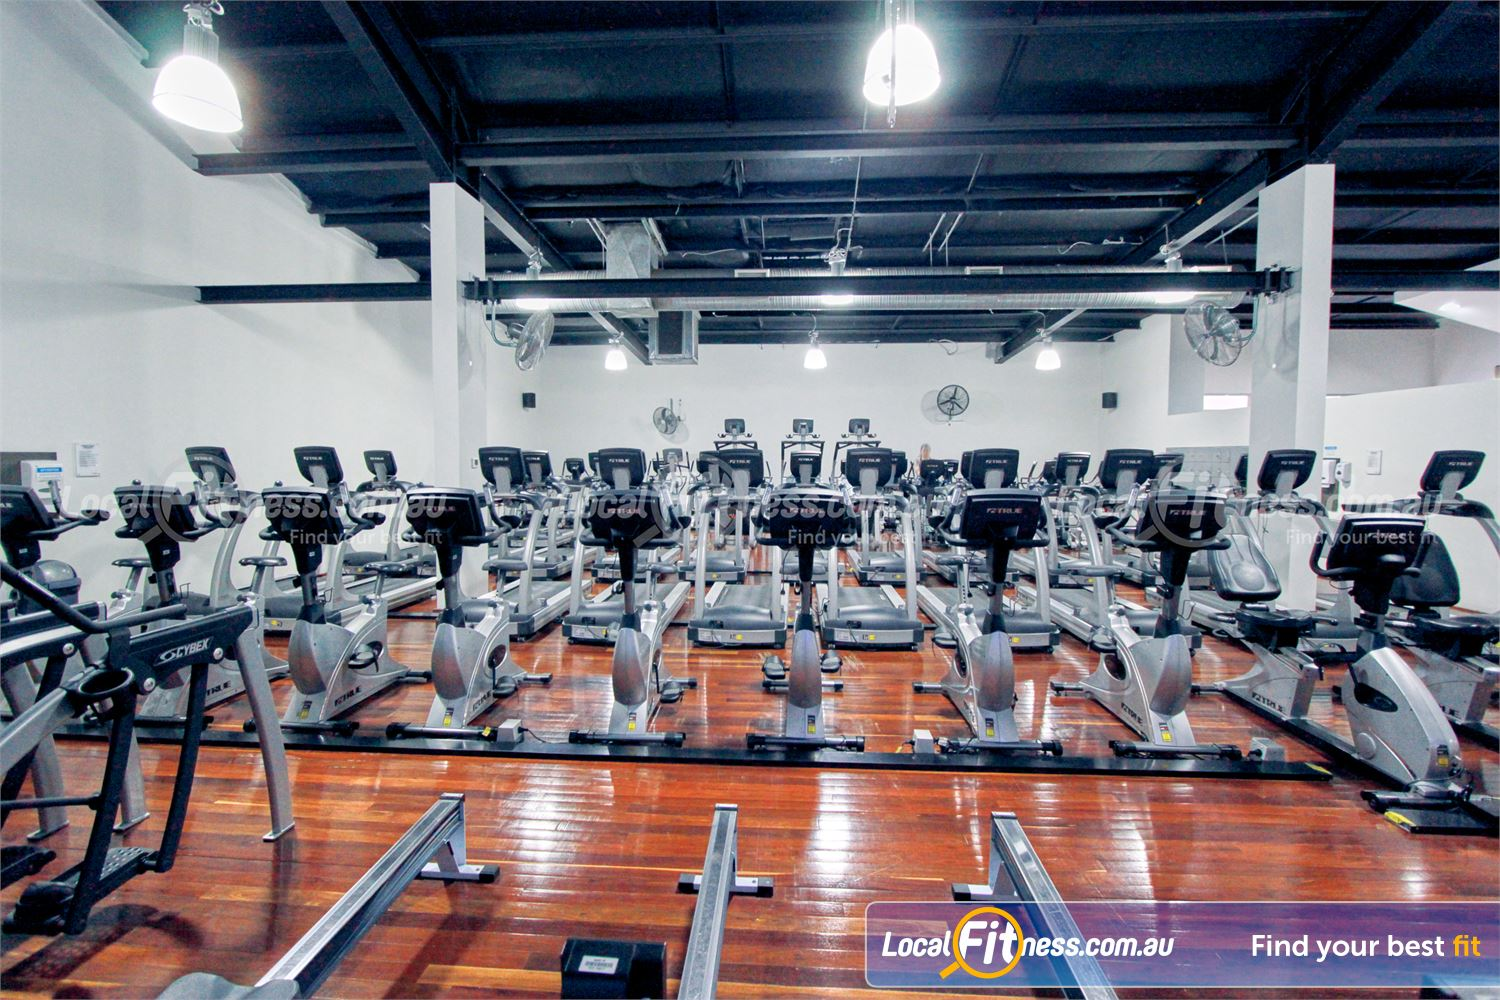 Goodlife Health Clubs Near Mount Evelyn Rows of treadmills, cross-trainers, steppers, cycle bikes and more.